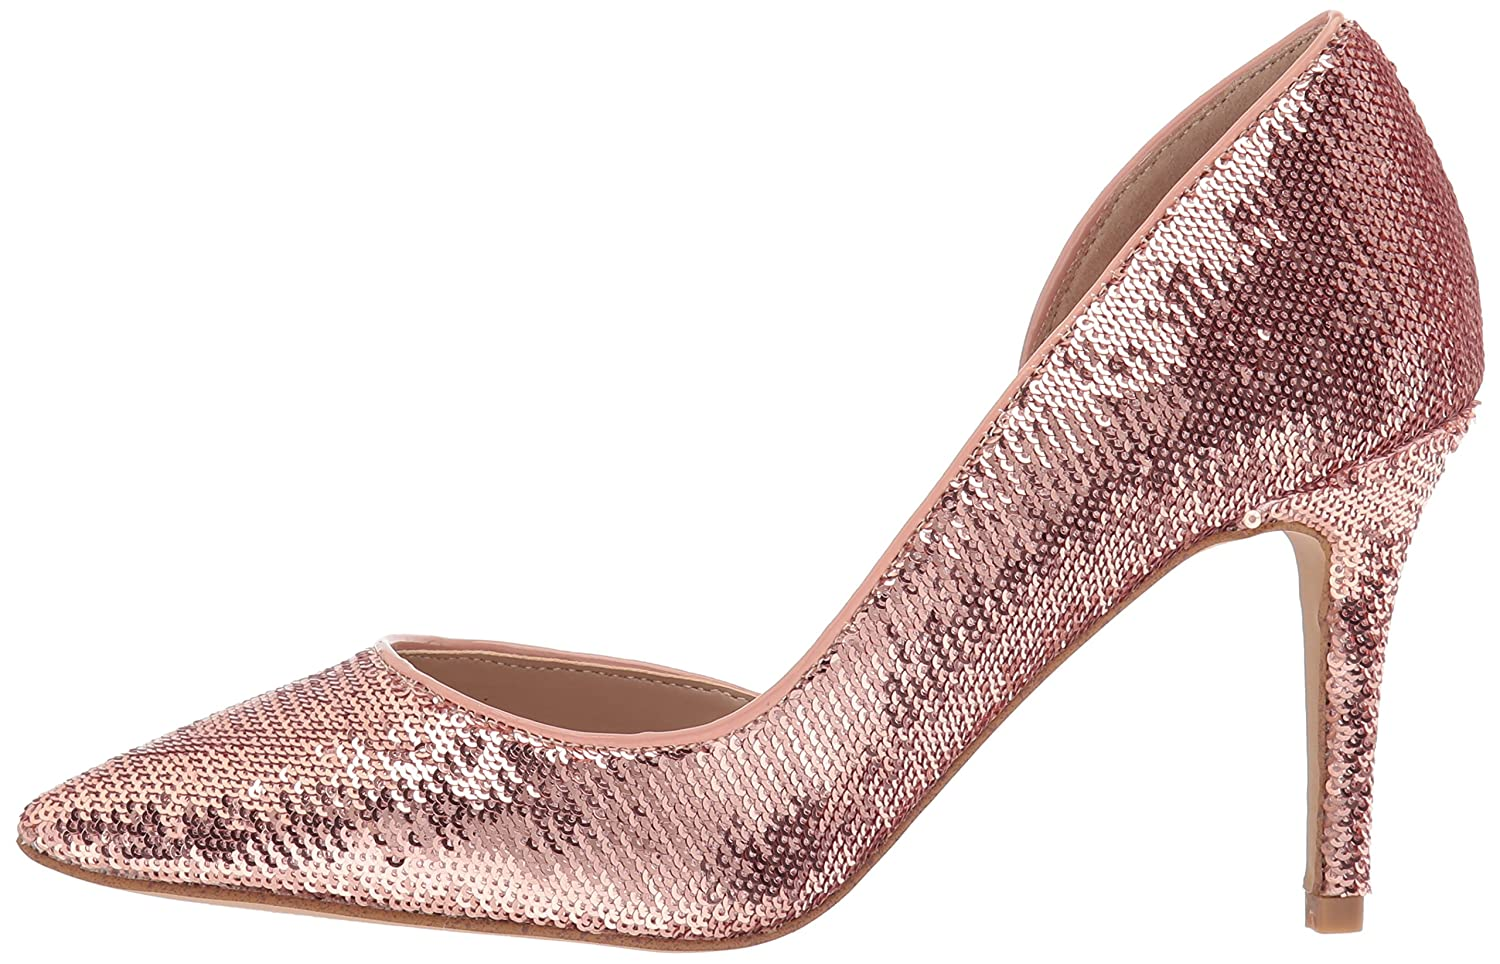 ALDO Women's Acedda Pump B0743SZK6Q 6.5 B(M) US|Light Pink